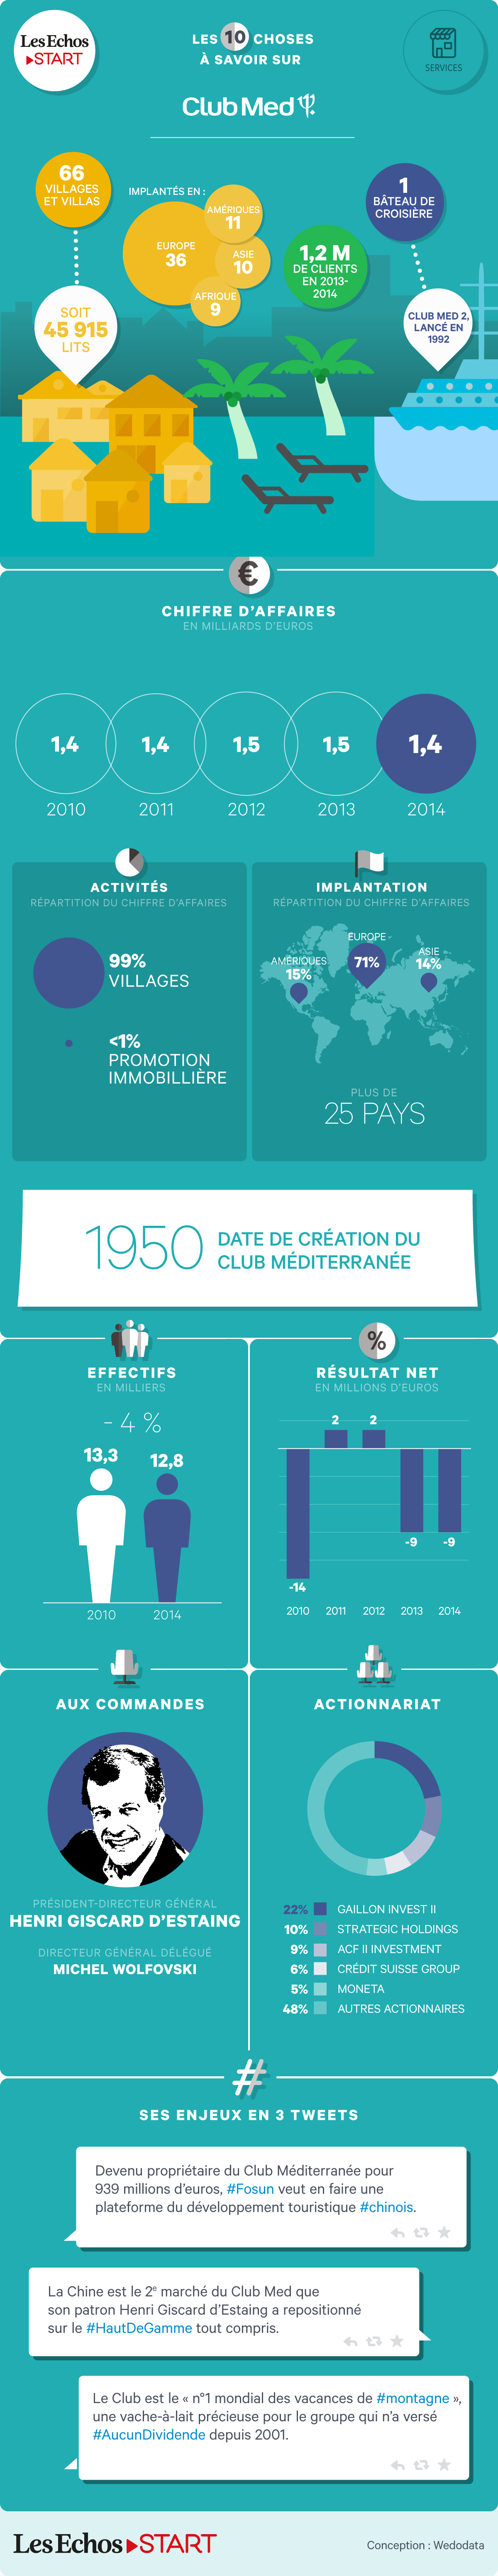 Poster Echos Start - Club Med